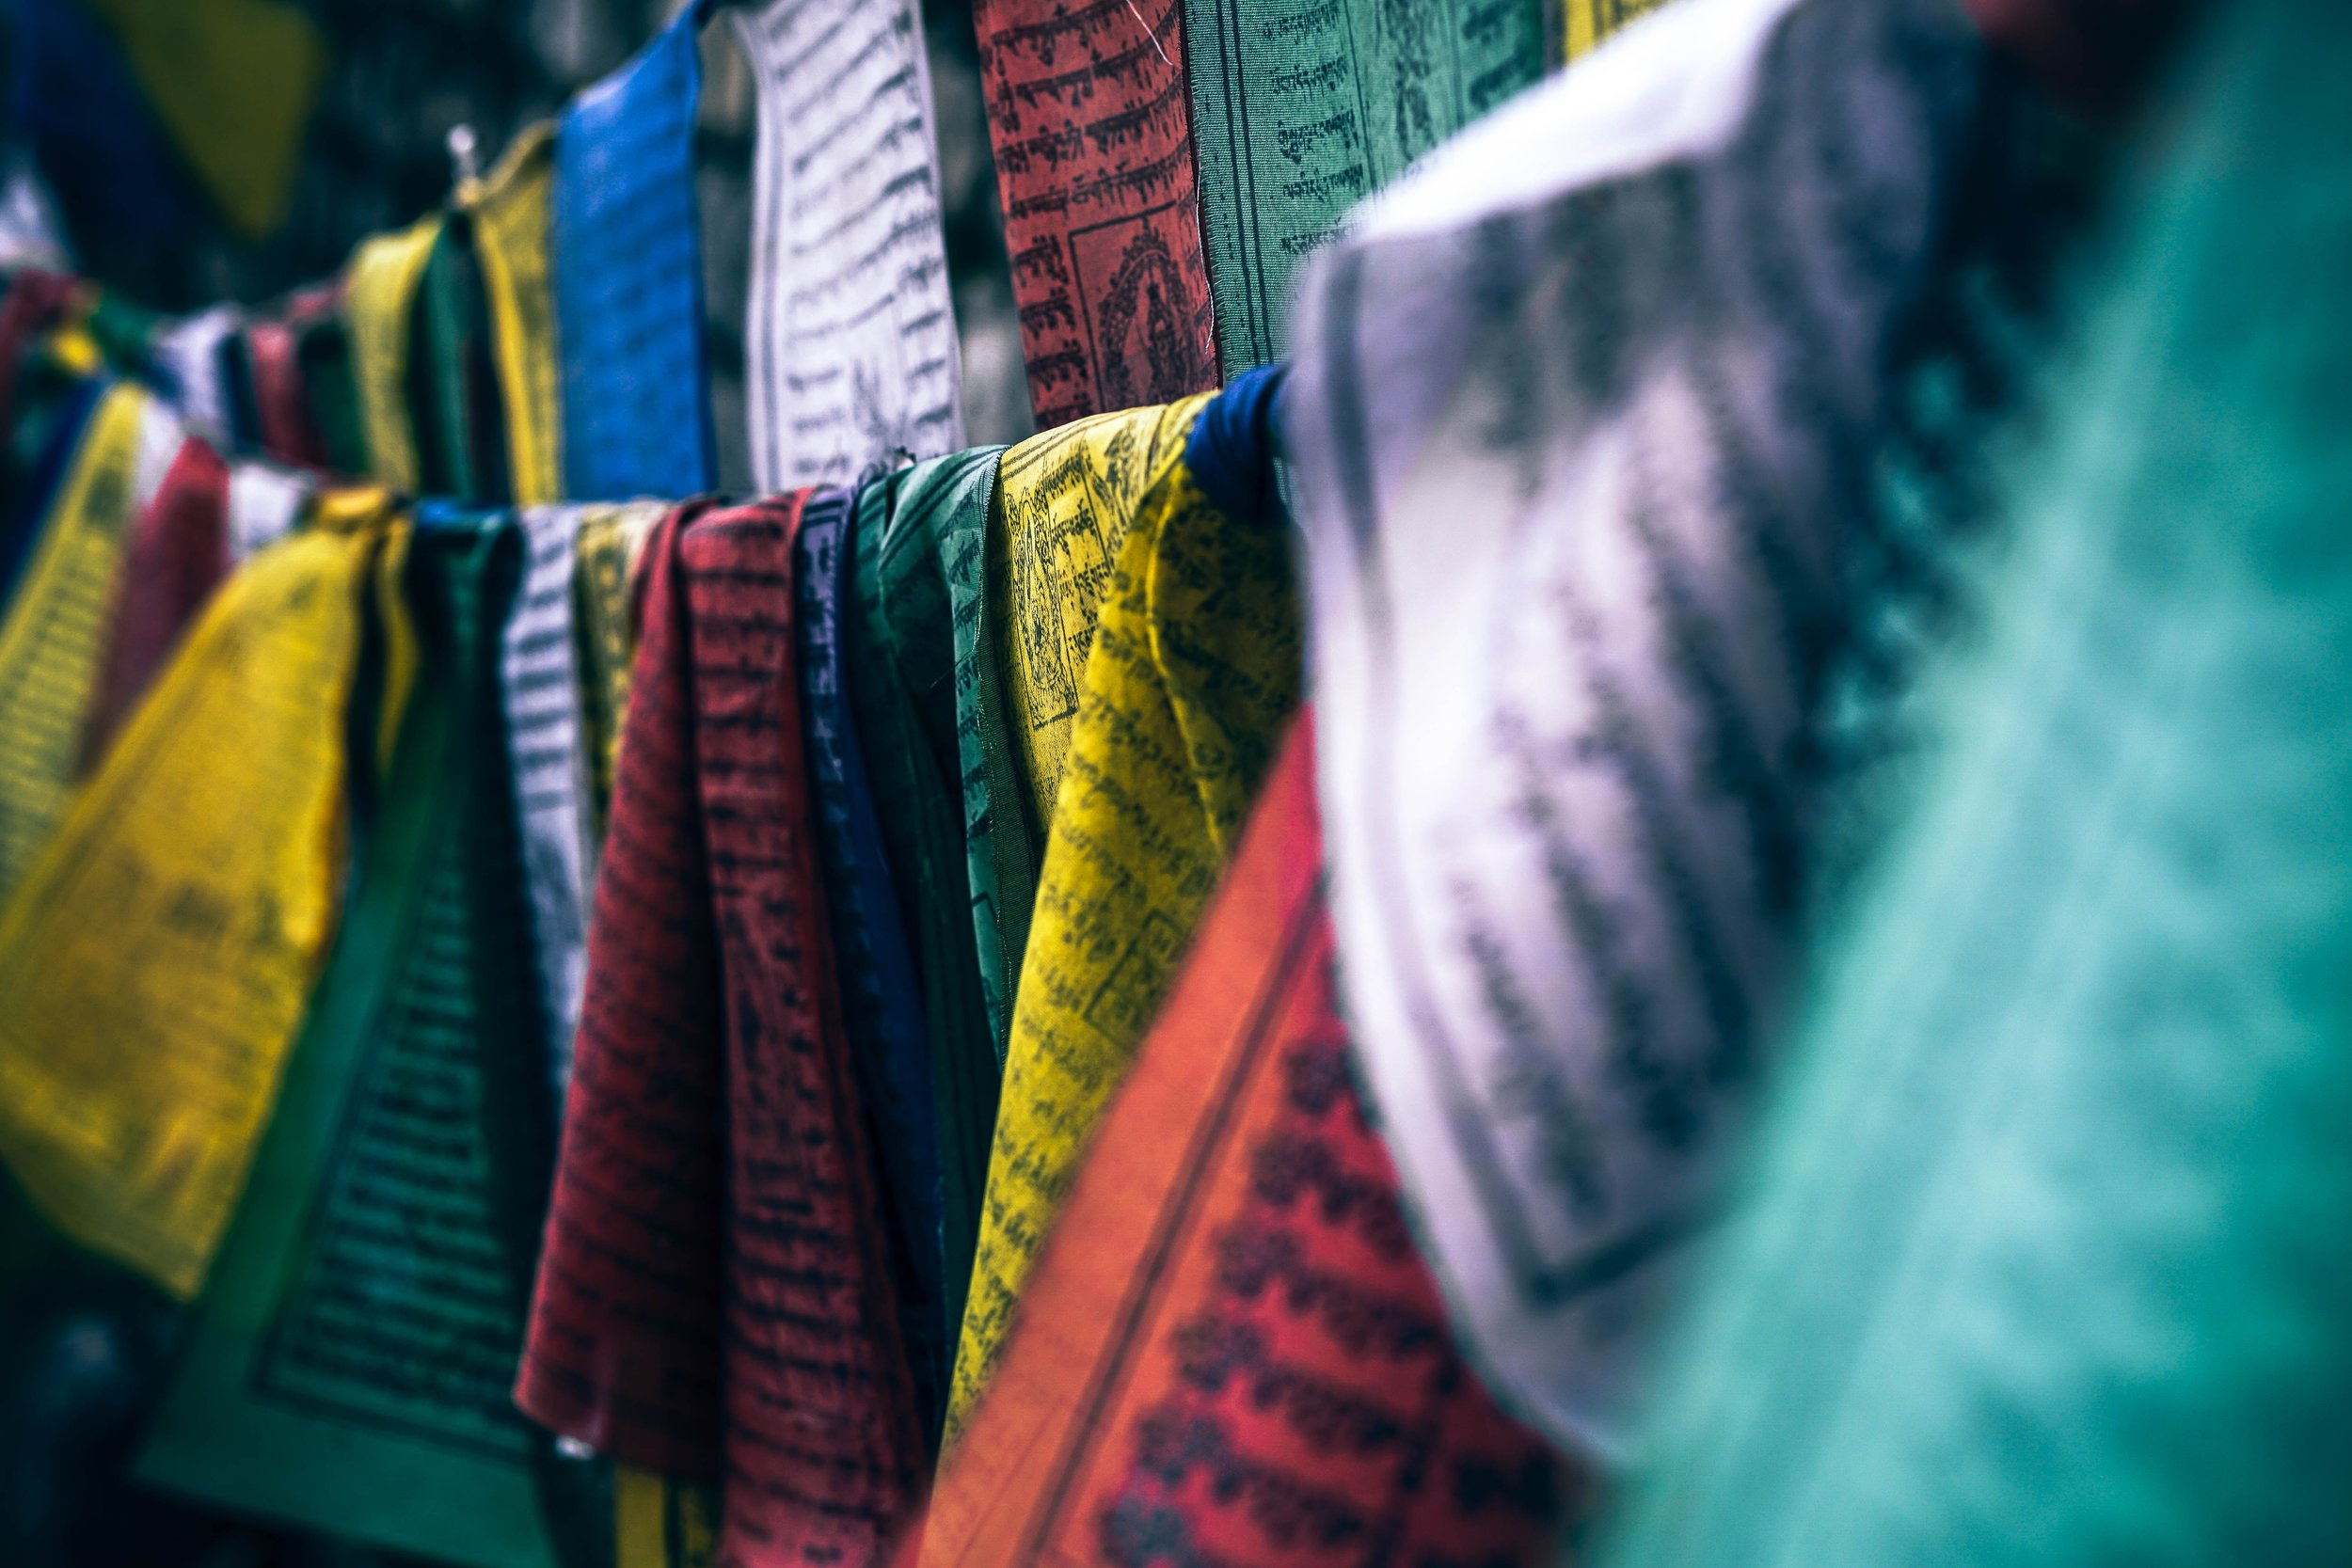 Prayer flags_unsplash.jpg